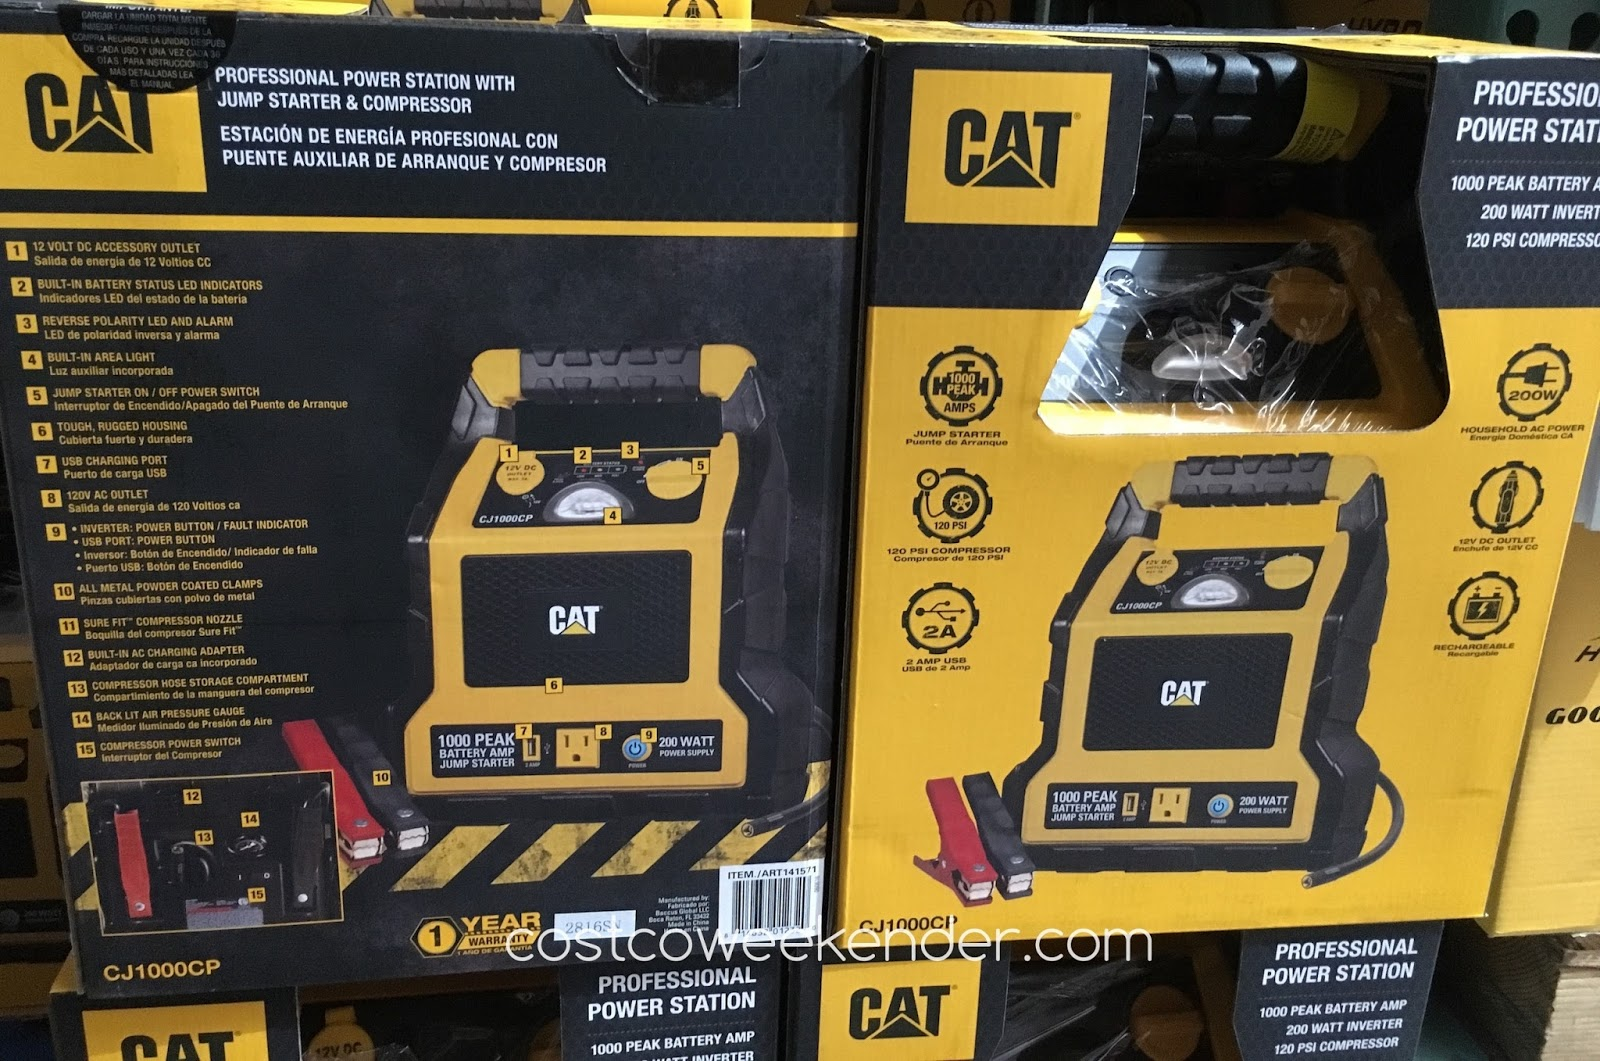 Cat Cj1000cp Professioinal Power Station With Jump Starter And